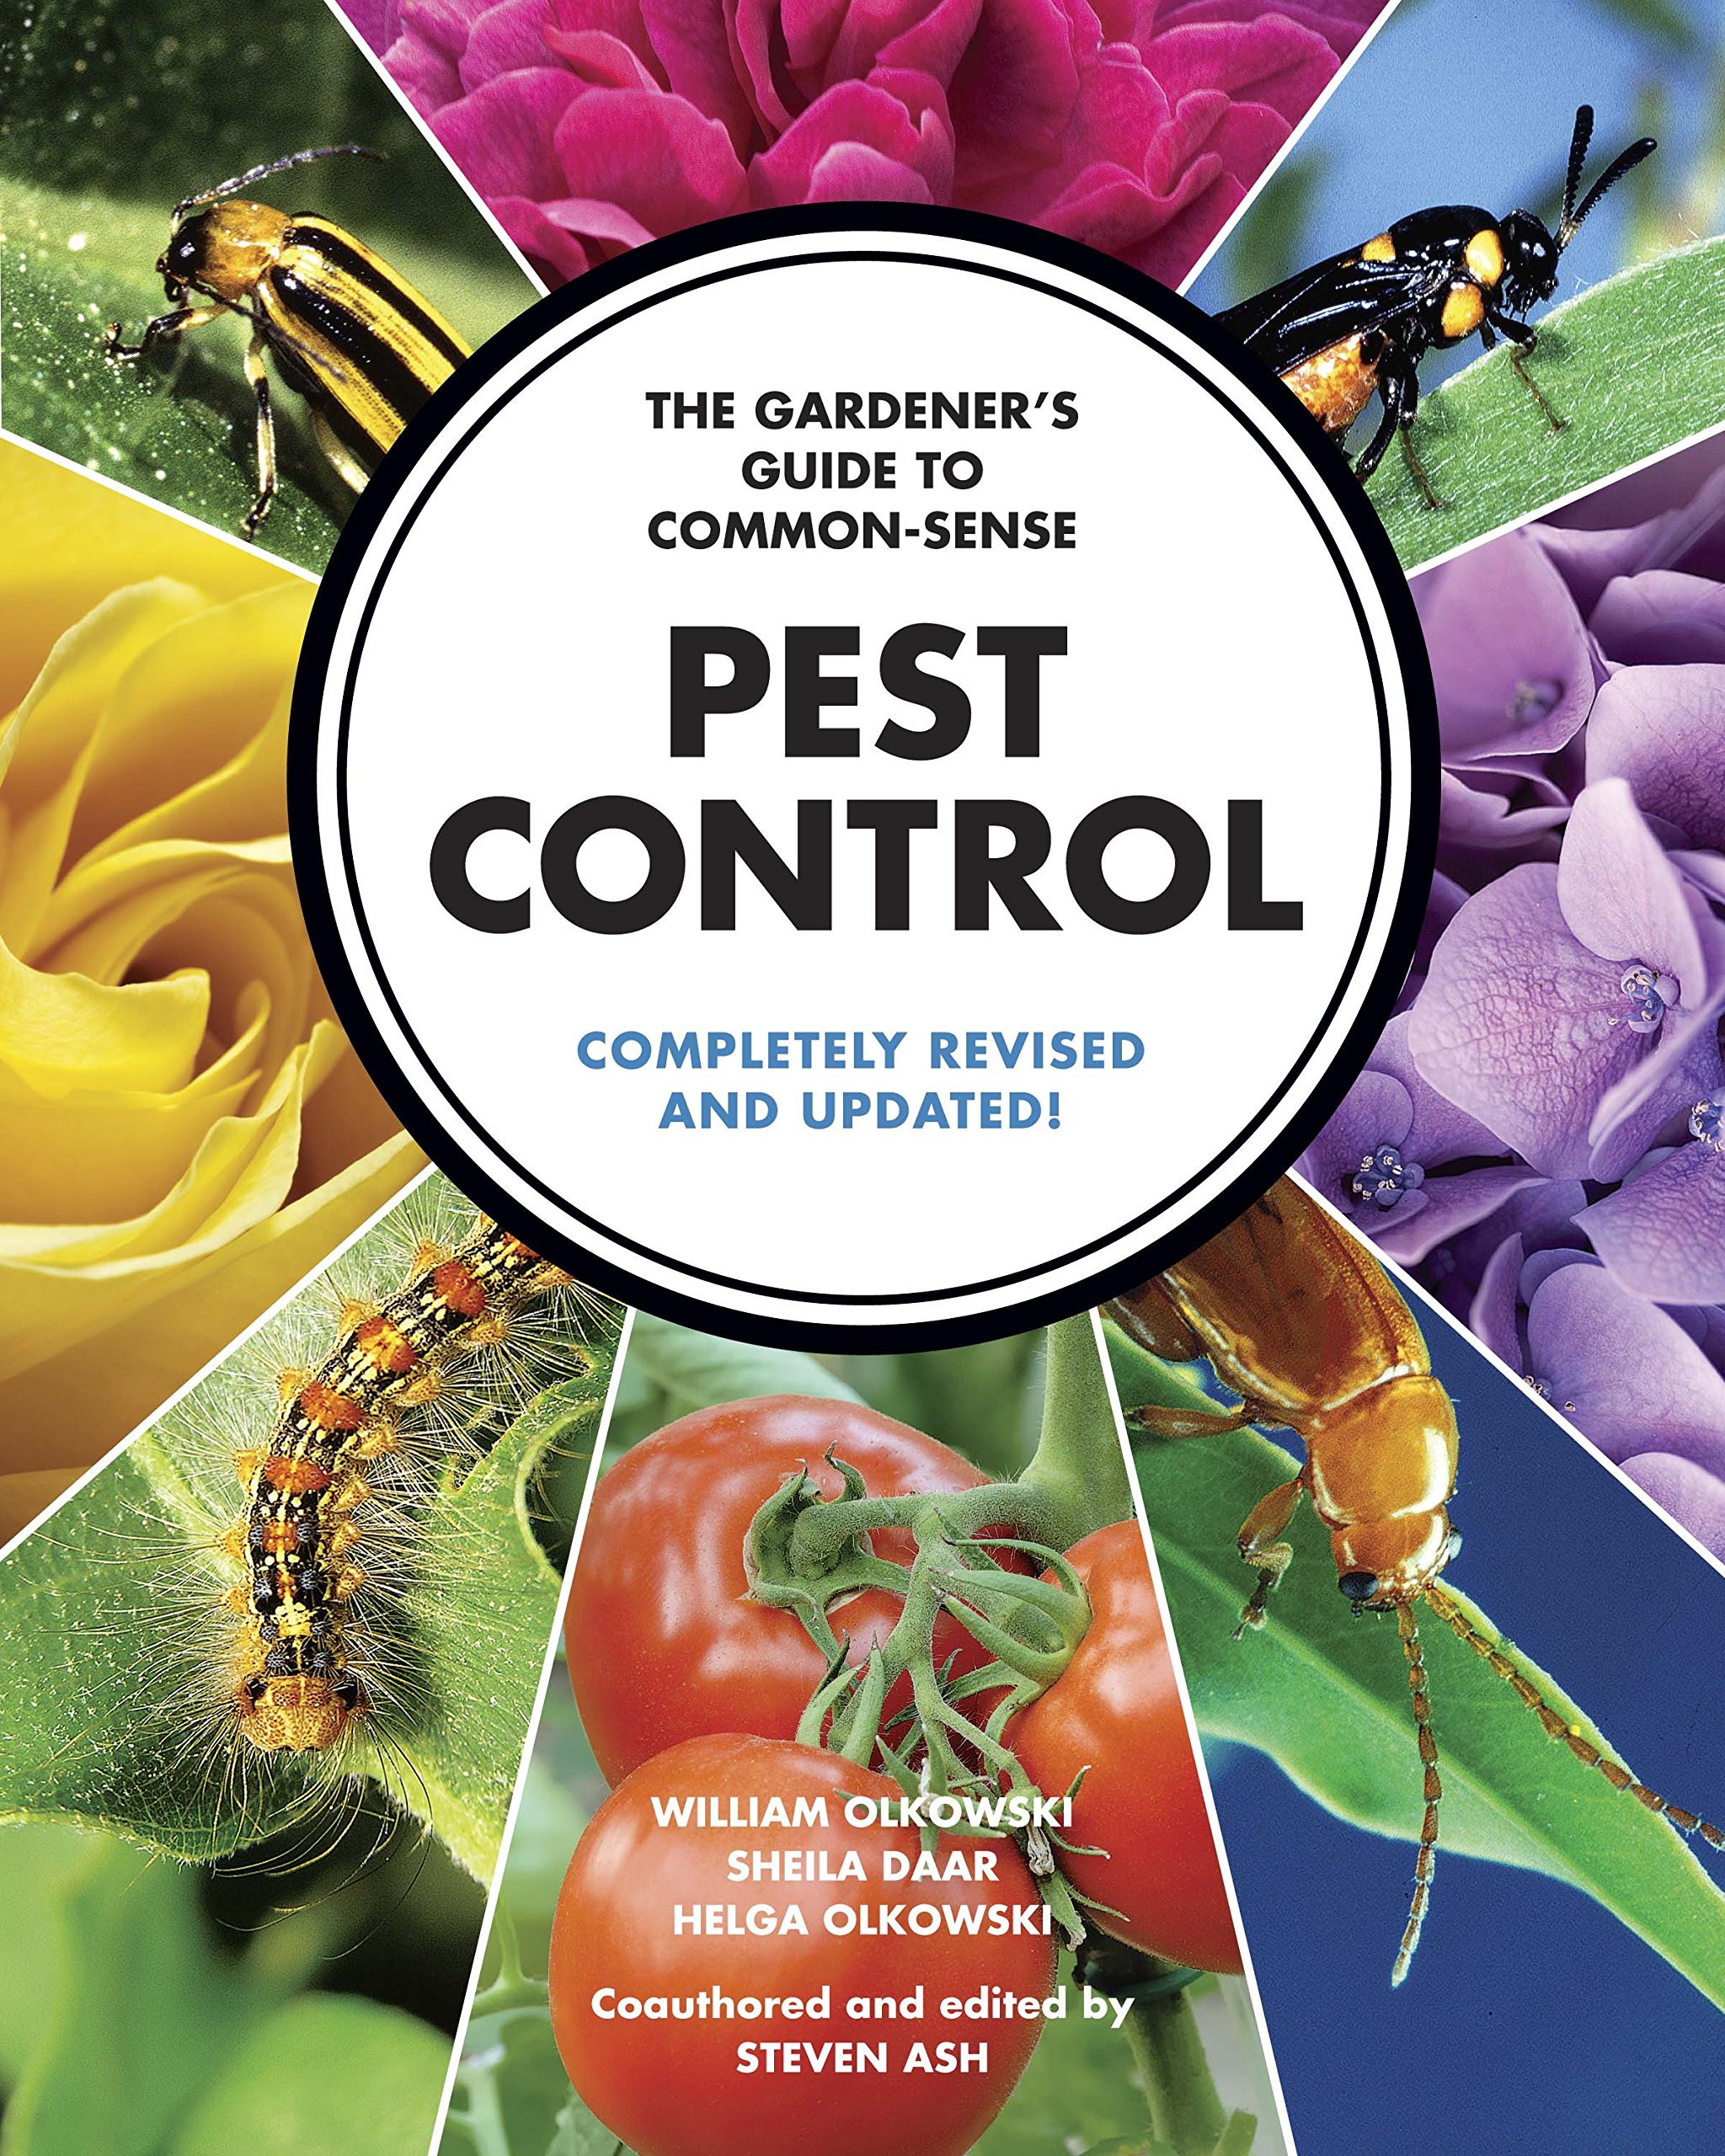 The Gardener's Guide to Common-Sense Pest Control: Completely Revised and Updated